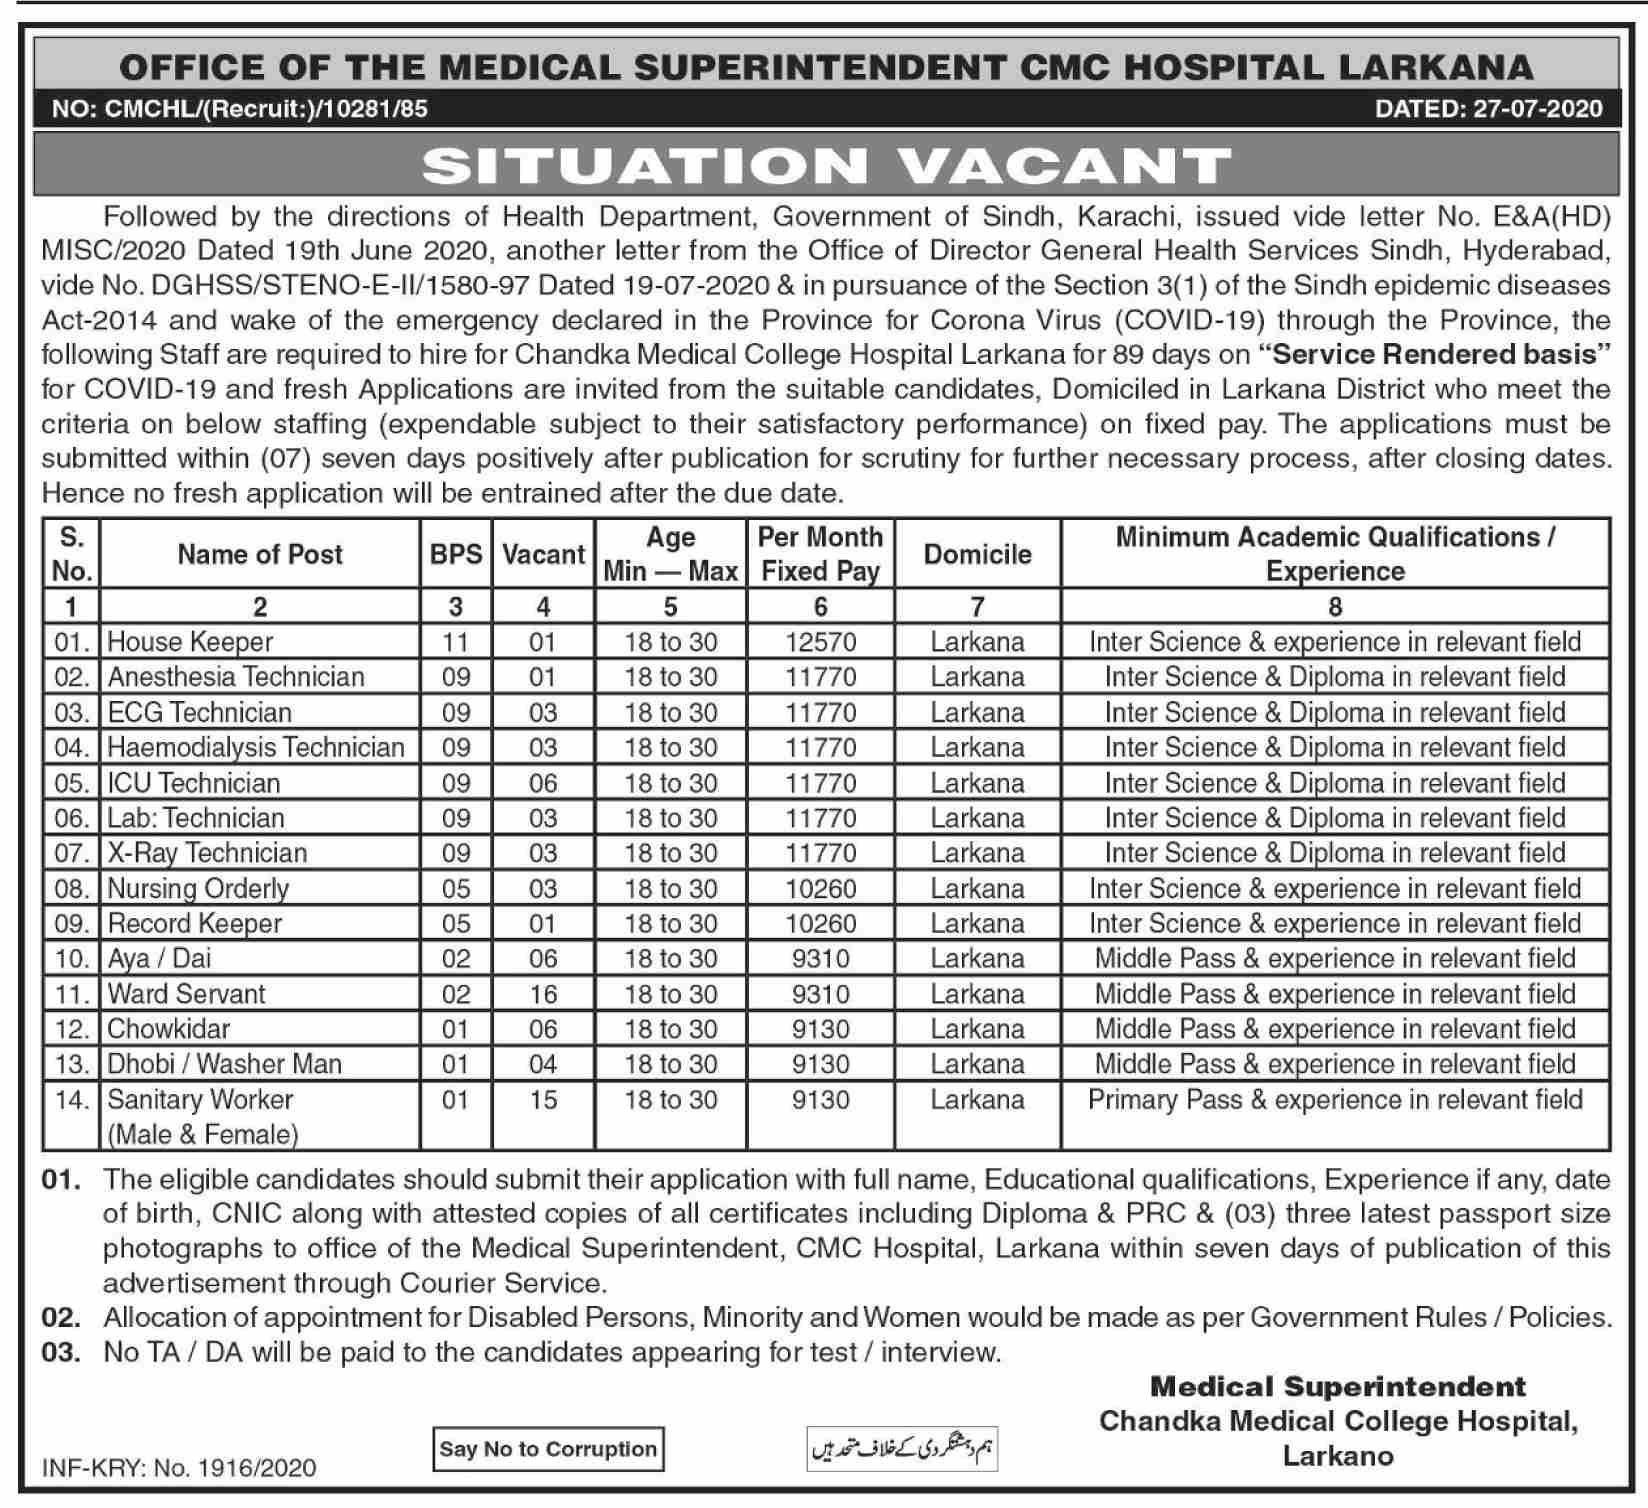 ICU Technician CMC Hospital Larkana Jobs August 04, 2020